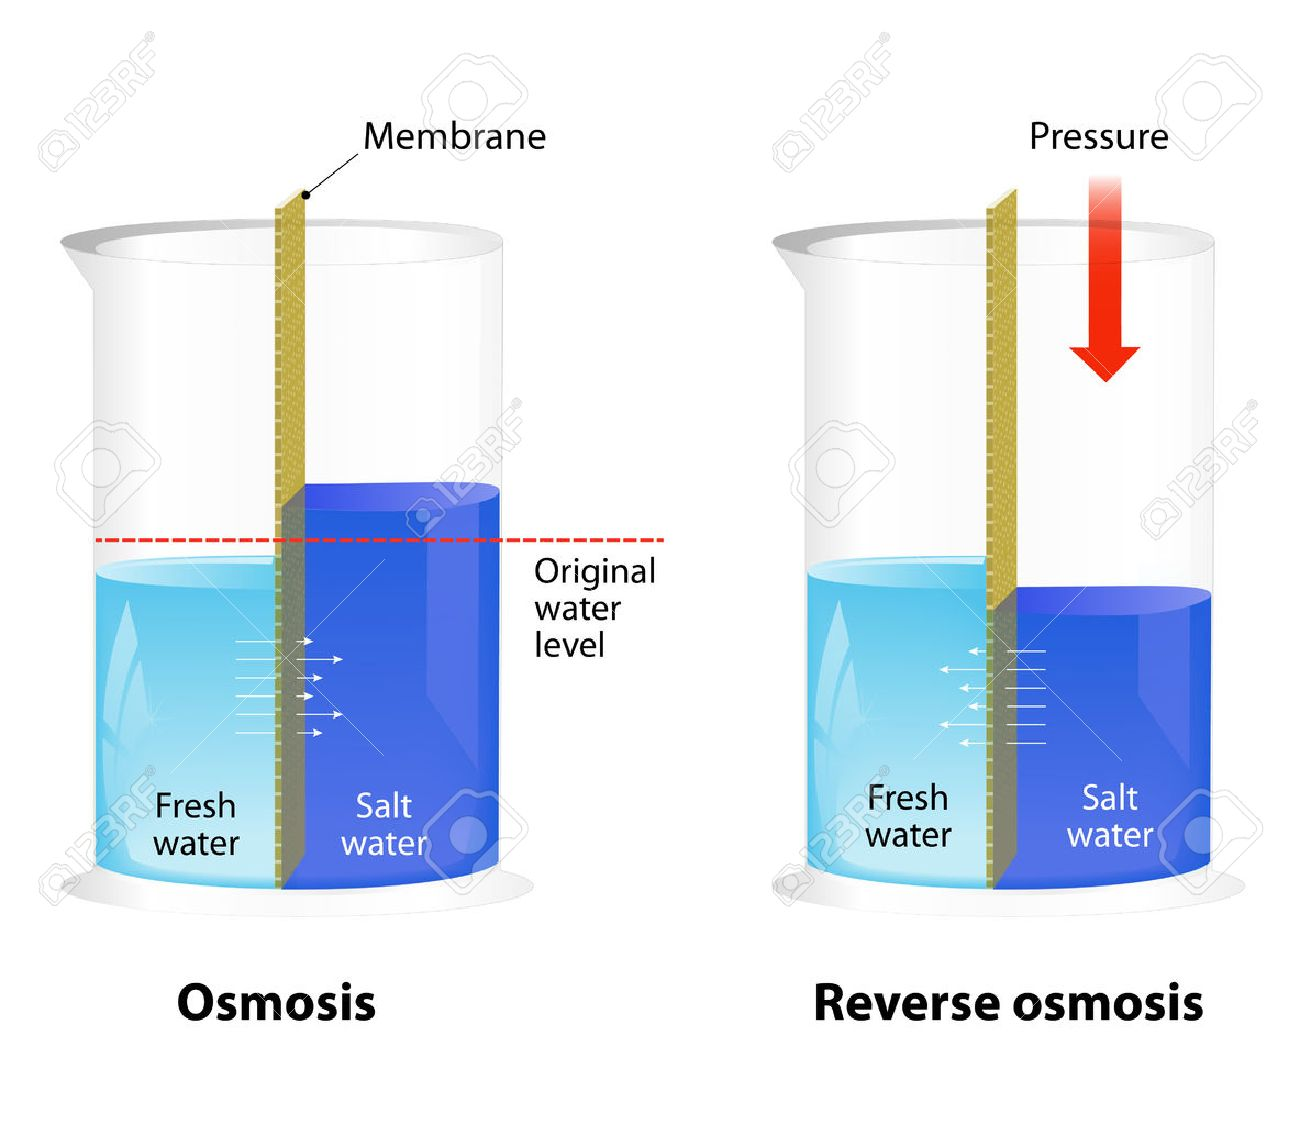 Where To Get Reverse Osmosis Water Difference Between Osmosis And Reverse Osmosis Water Passing